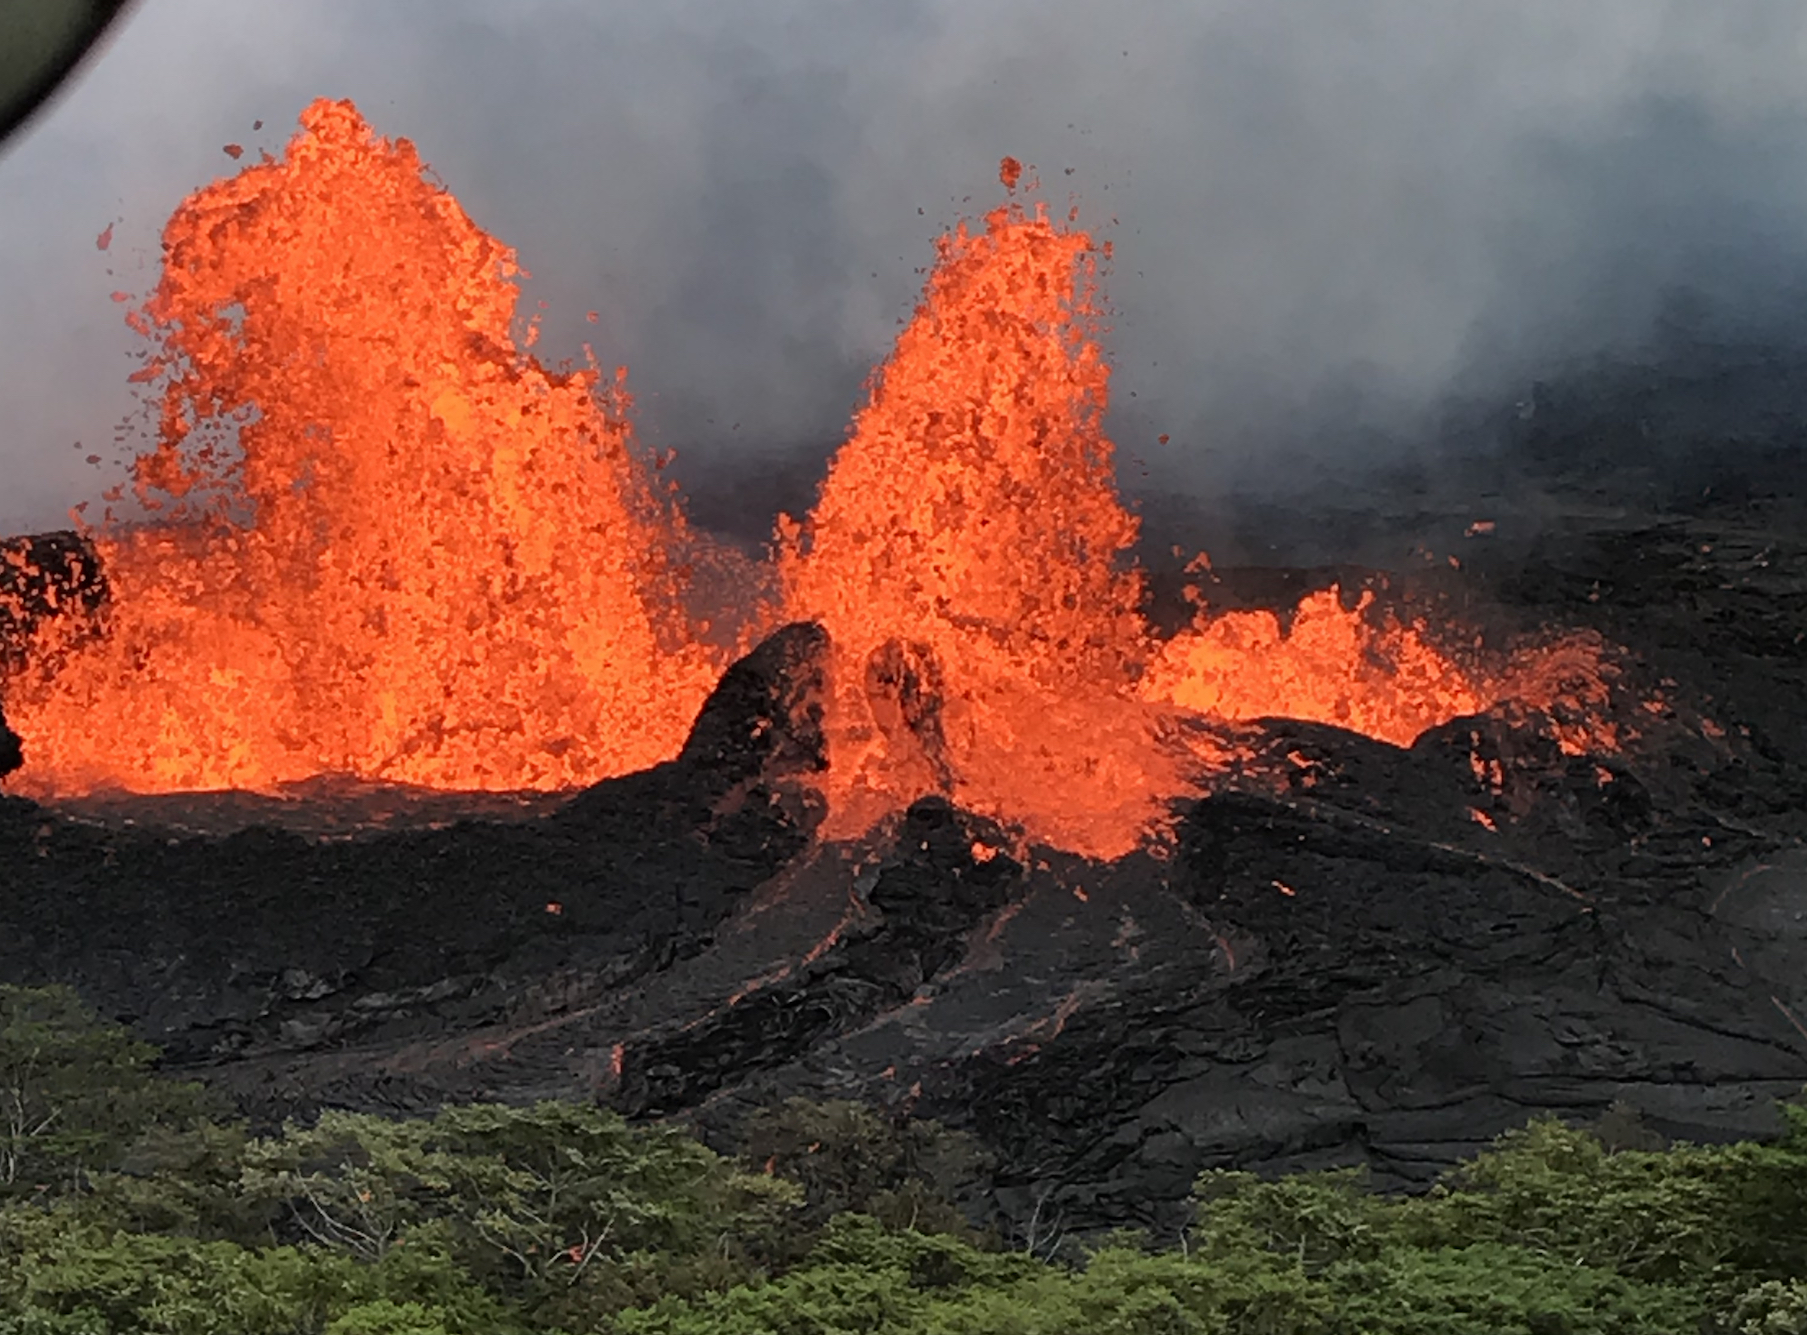 Today's Image of the Day comes from the U.S. Geological Survey and features a look at lava bursts at the Kilauea volcano's Lower East Rift Zone.